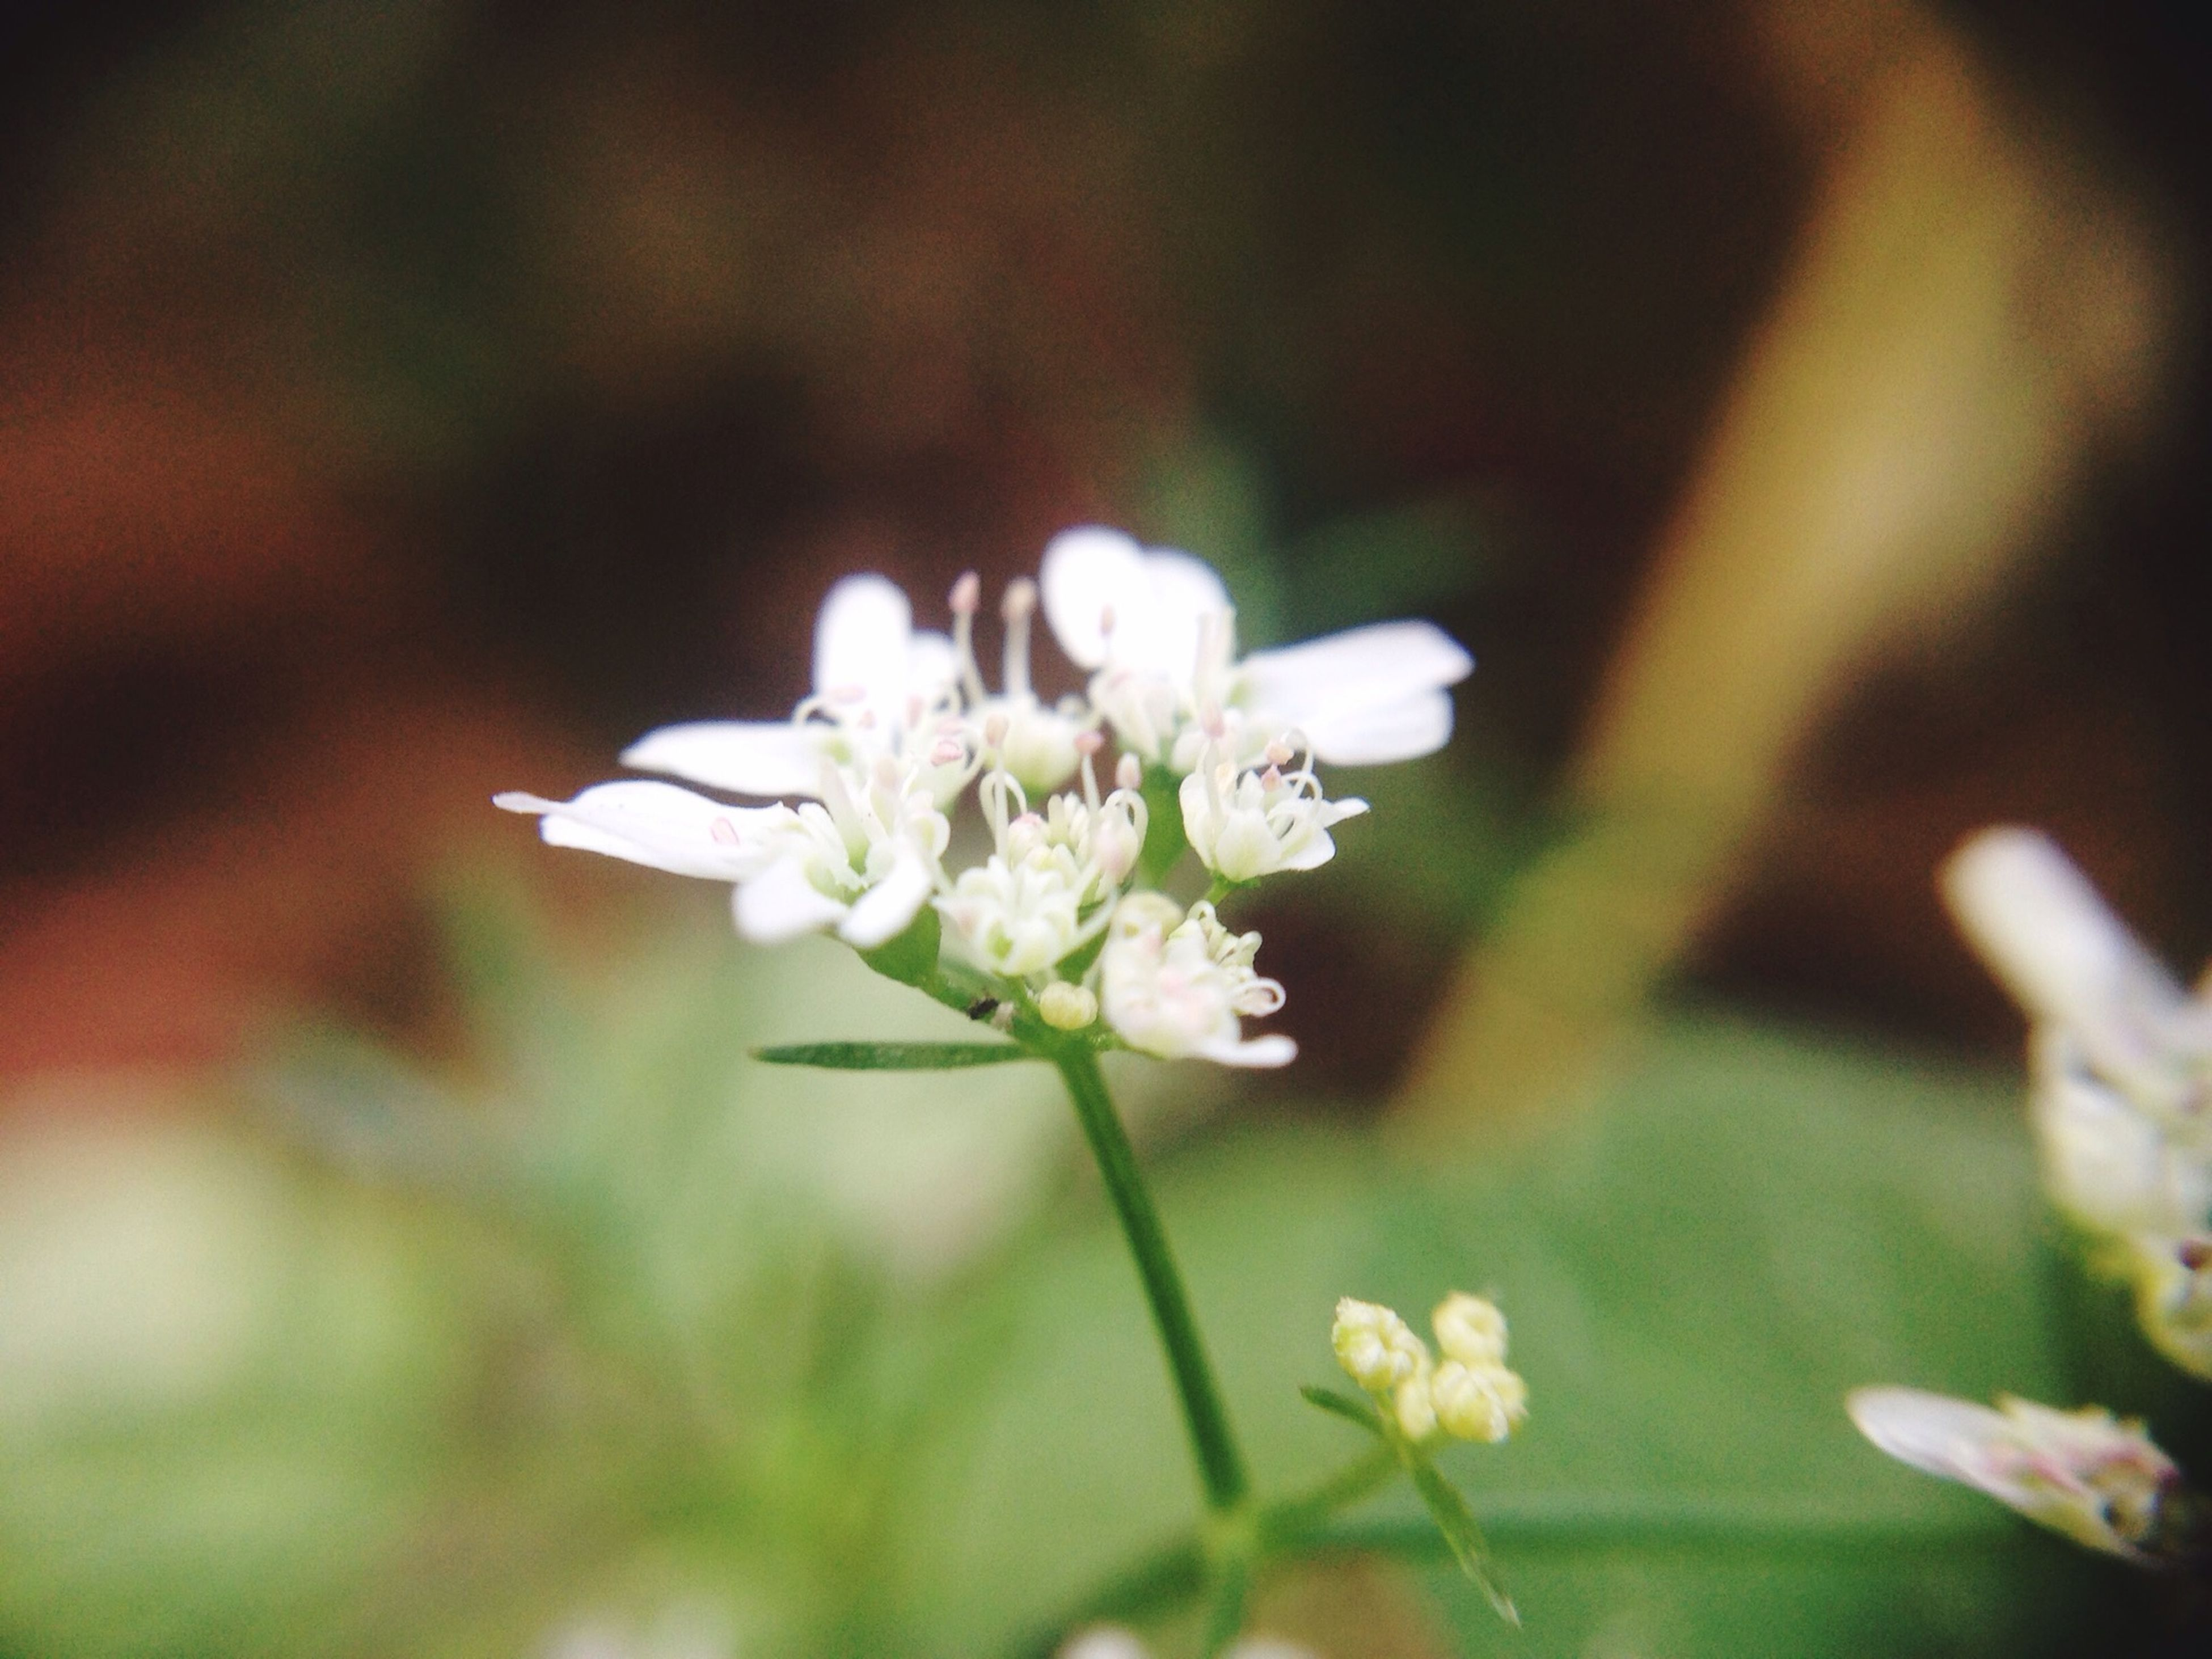 flower, freshness, fragility, petal, white color, growth, flower head, beauty in nature, focus on foreground, close-up, blooming, nature, plant, selective focus, stem, in bloom, blossom, white, stamen, pollen